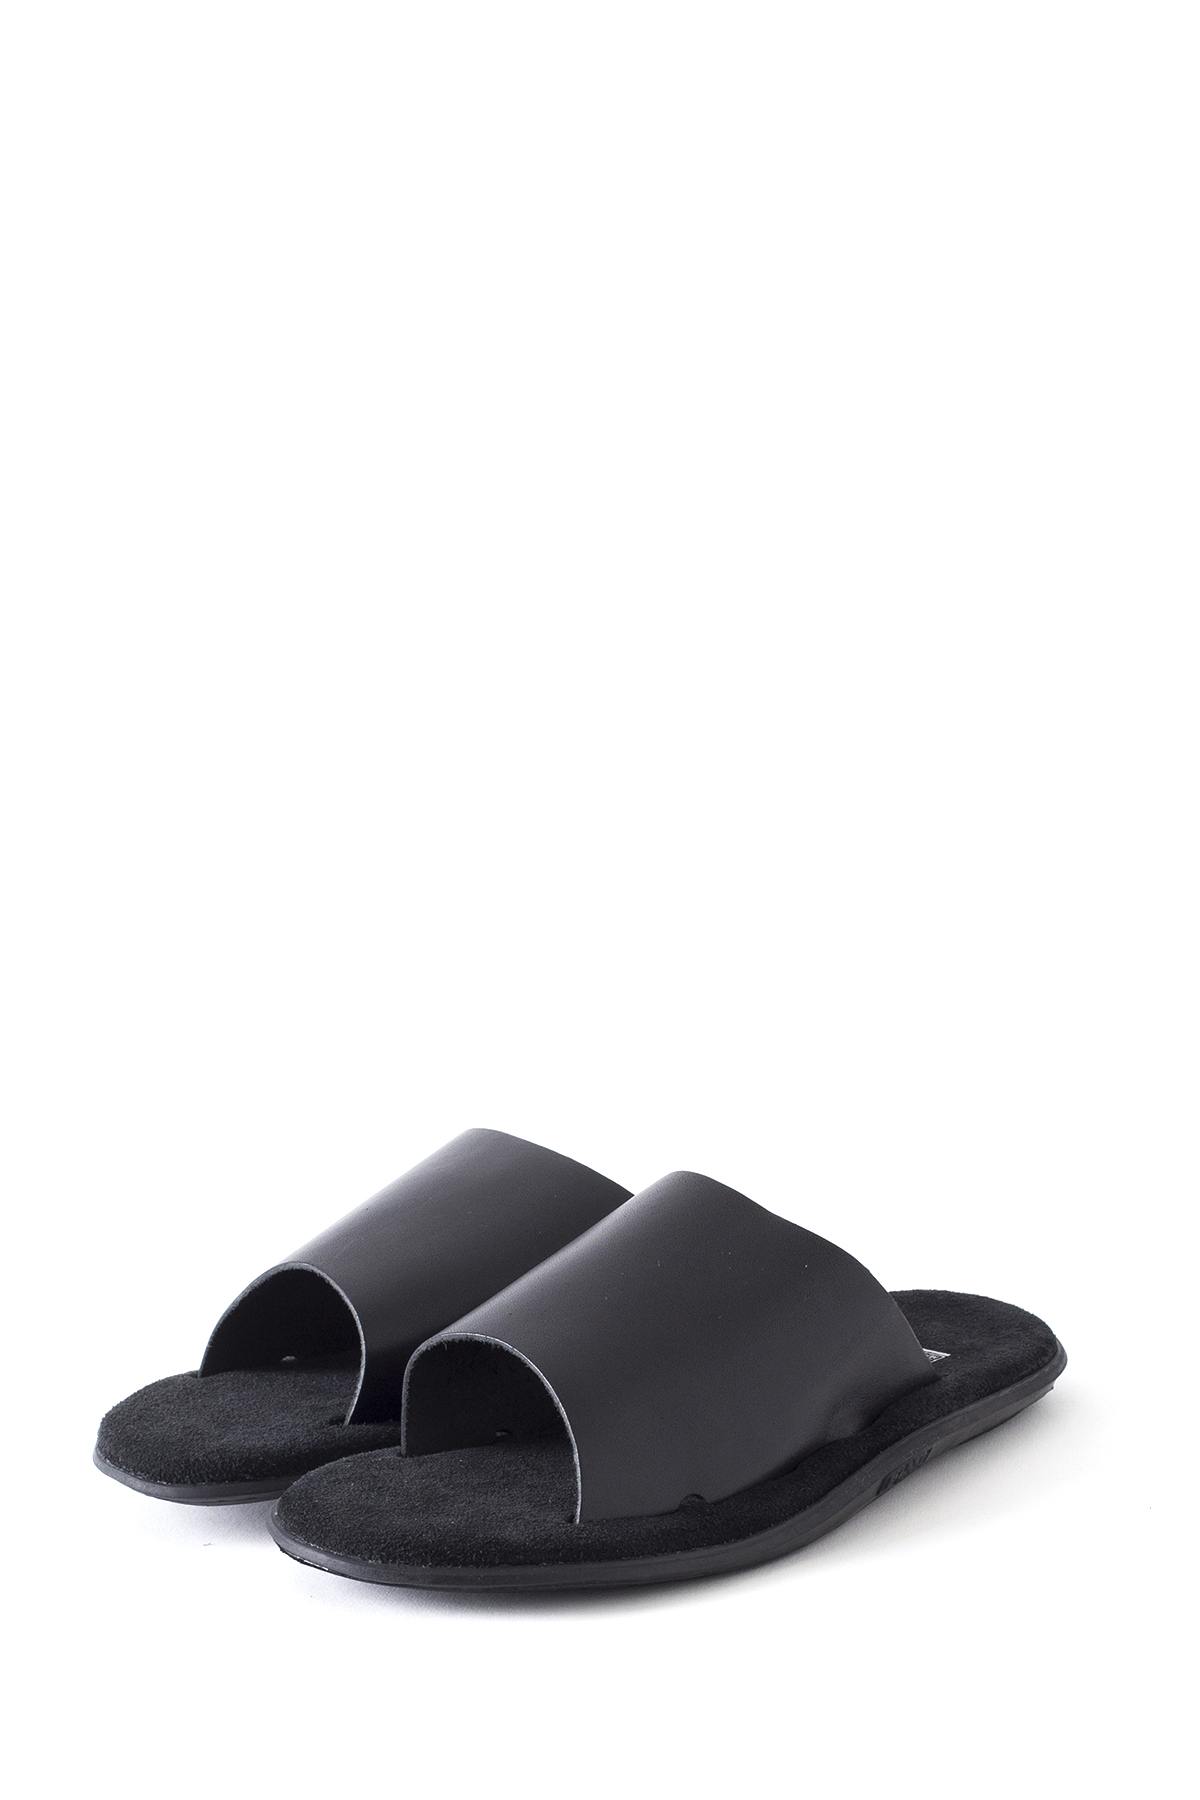 ISLAND SLIPPER : PBS705 (Leather Suede / Black)